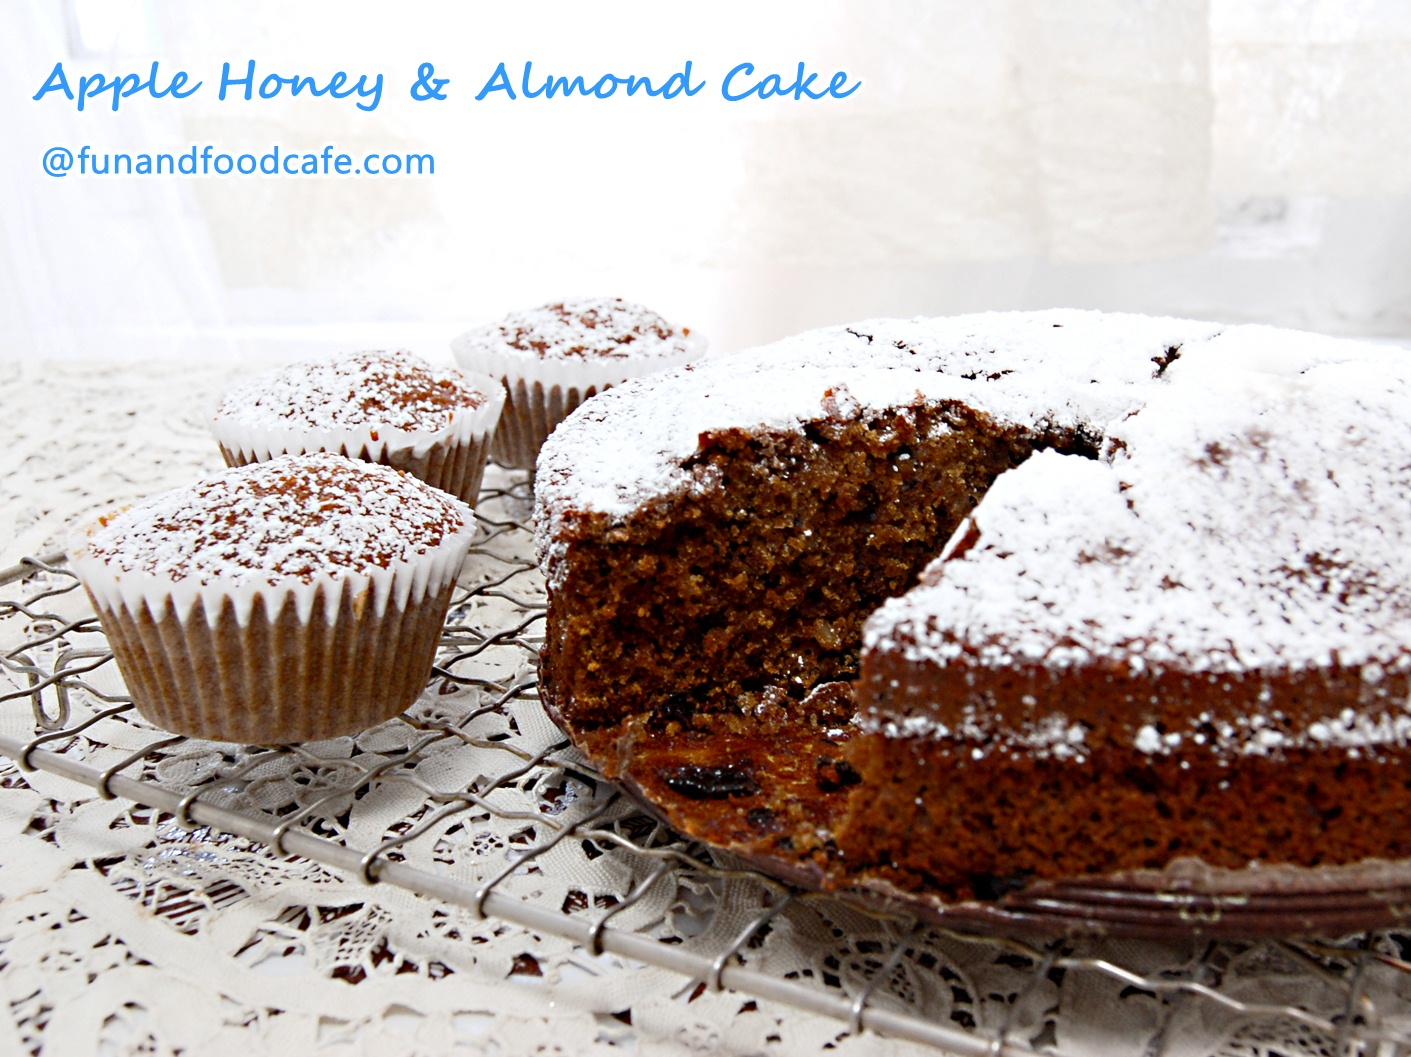 Apple-honey-cake-watermark